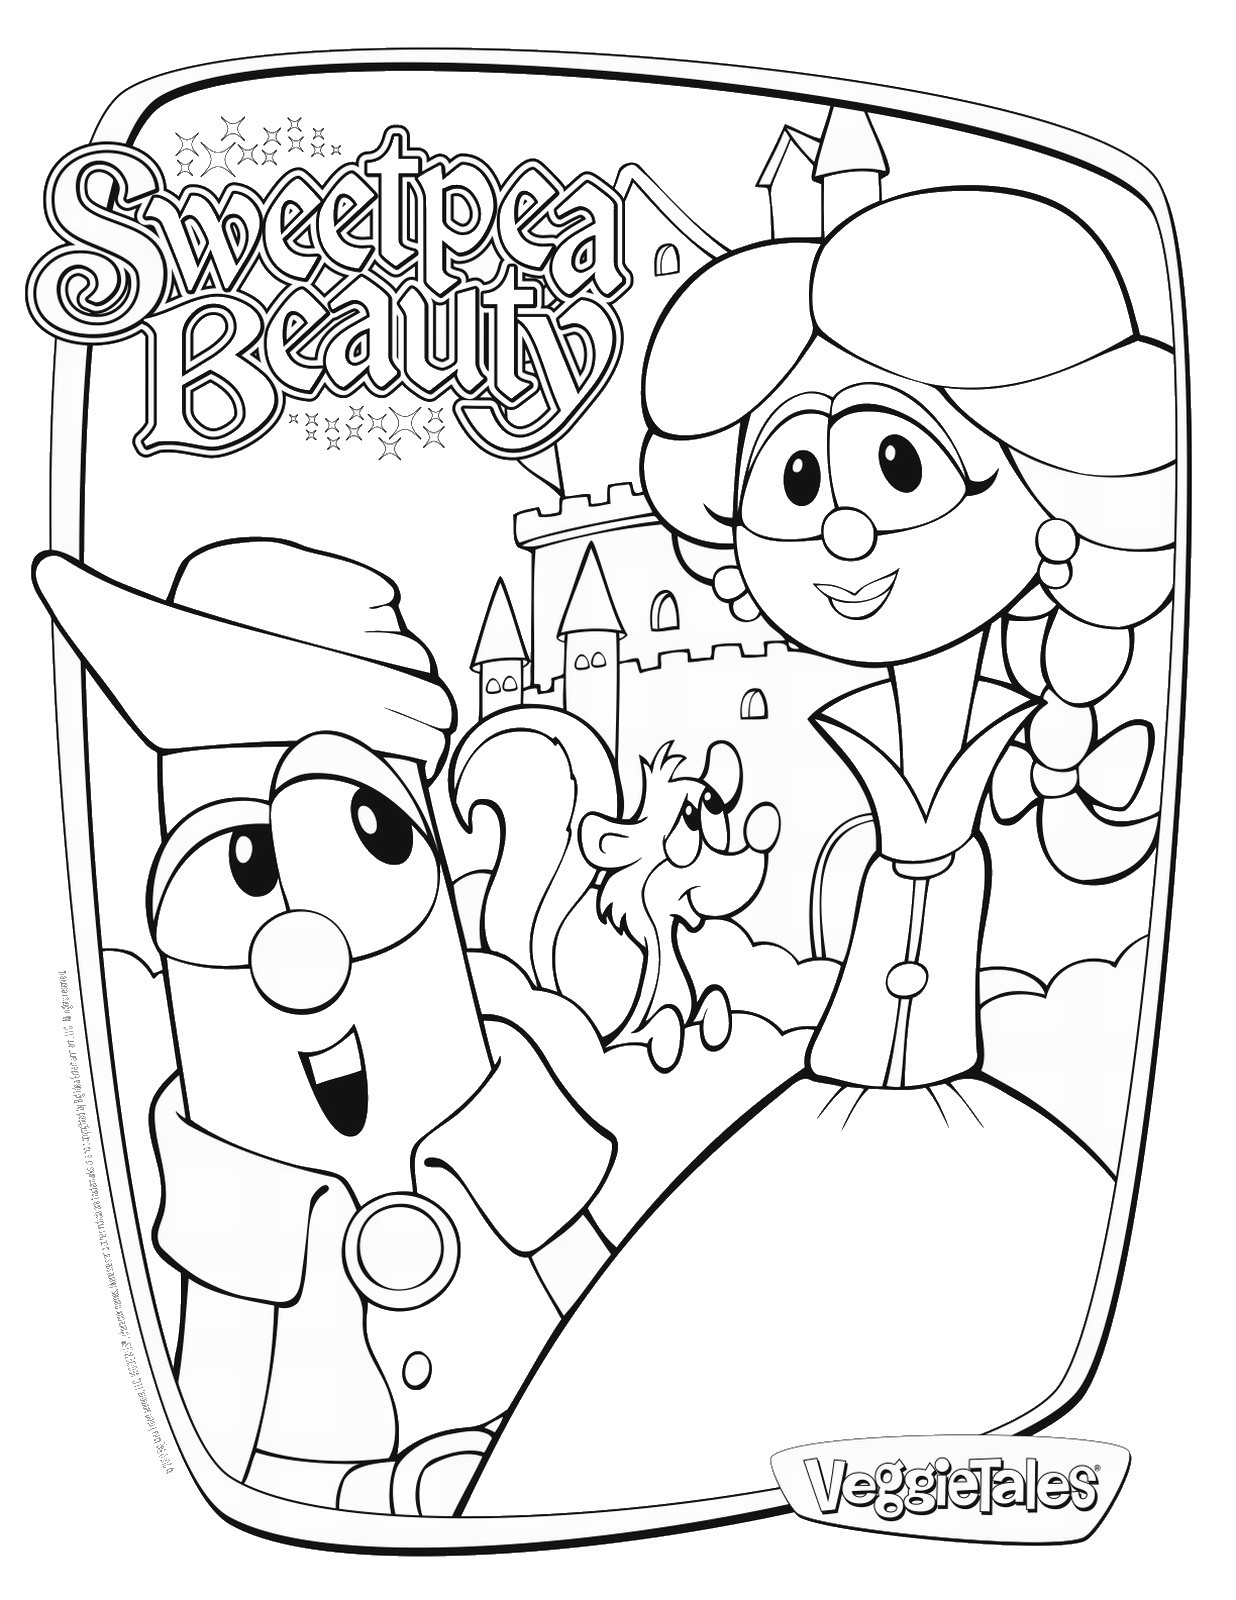 Coloring_Pages  Veggie Tales Coloring Pages